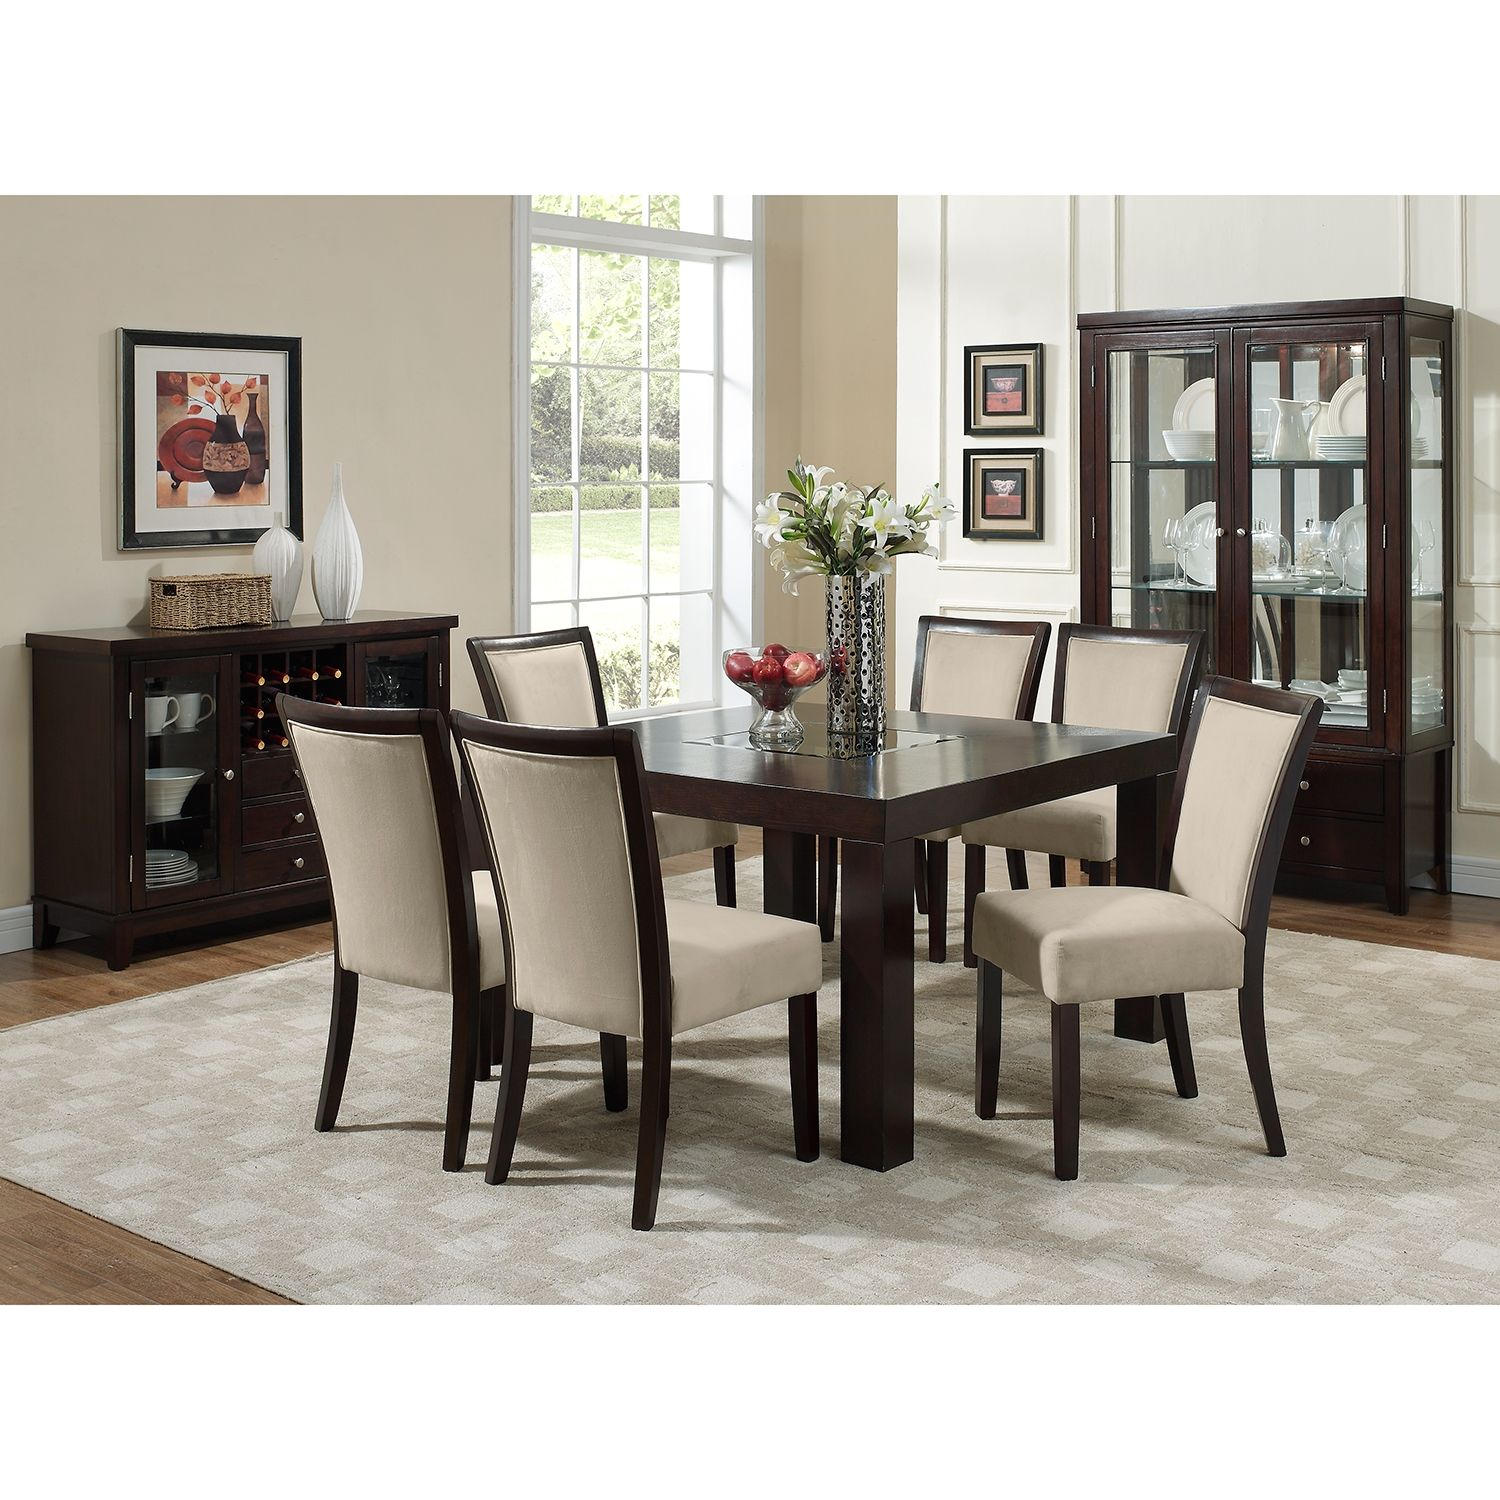 "50 Best Dining Room Sets For 2017: Tango Stone 7 Pc. Dinette (50"" Table)"